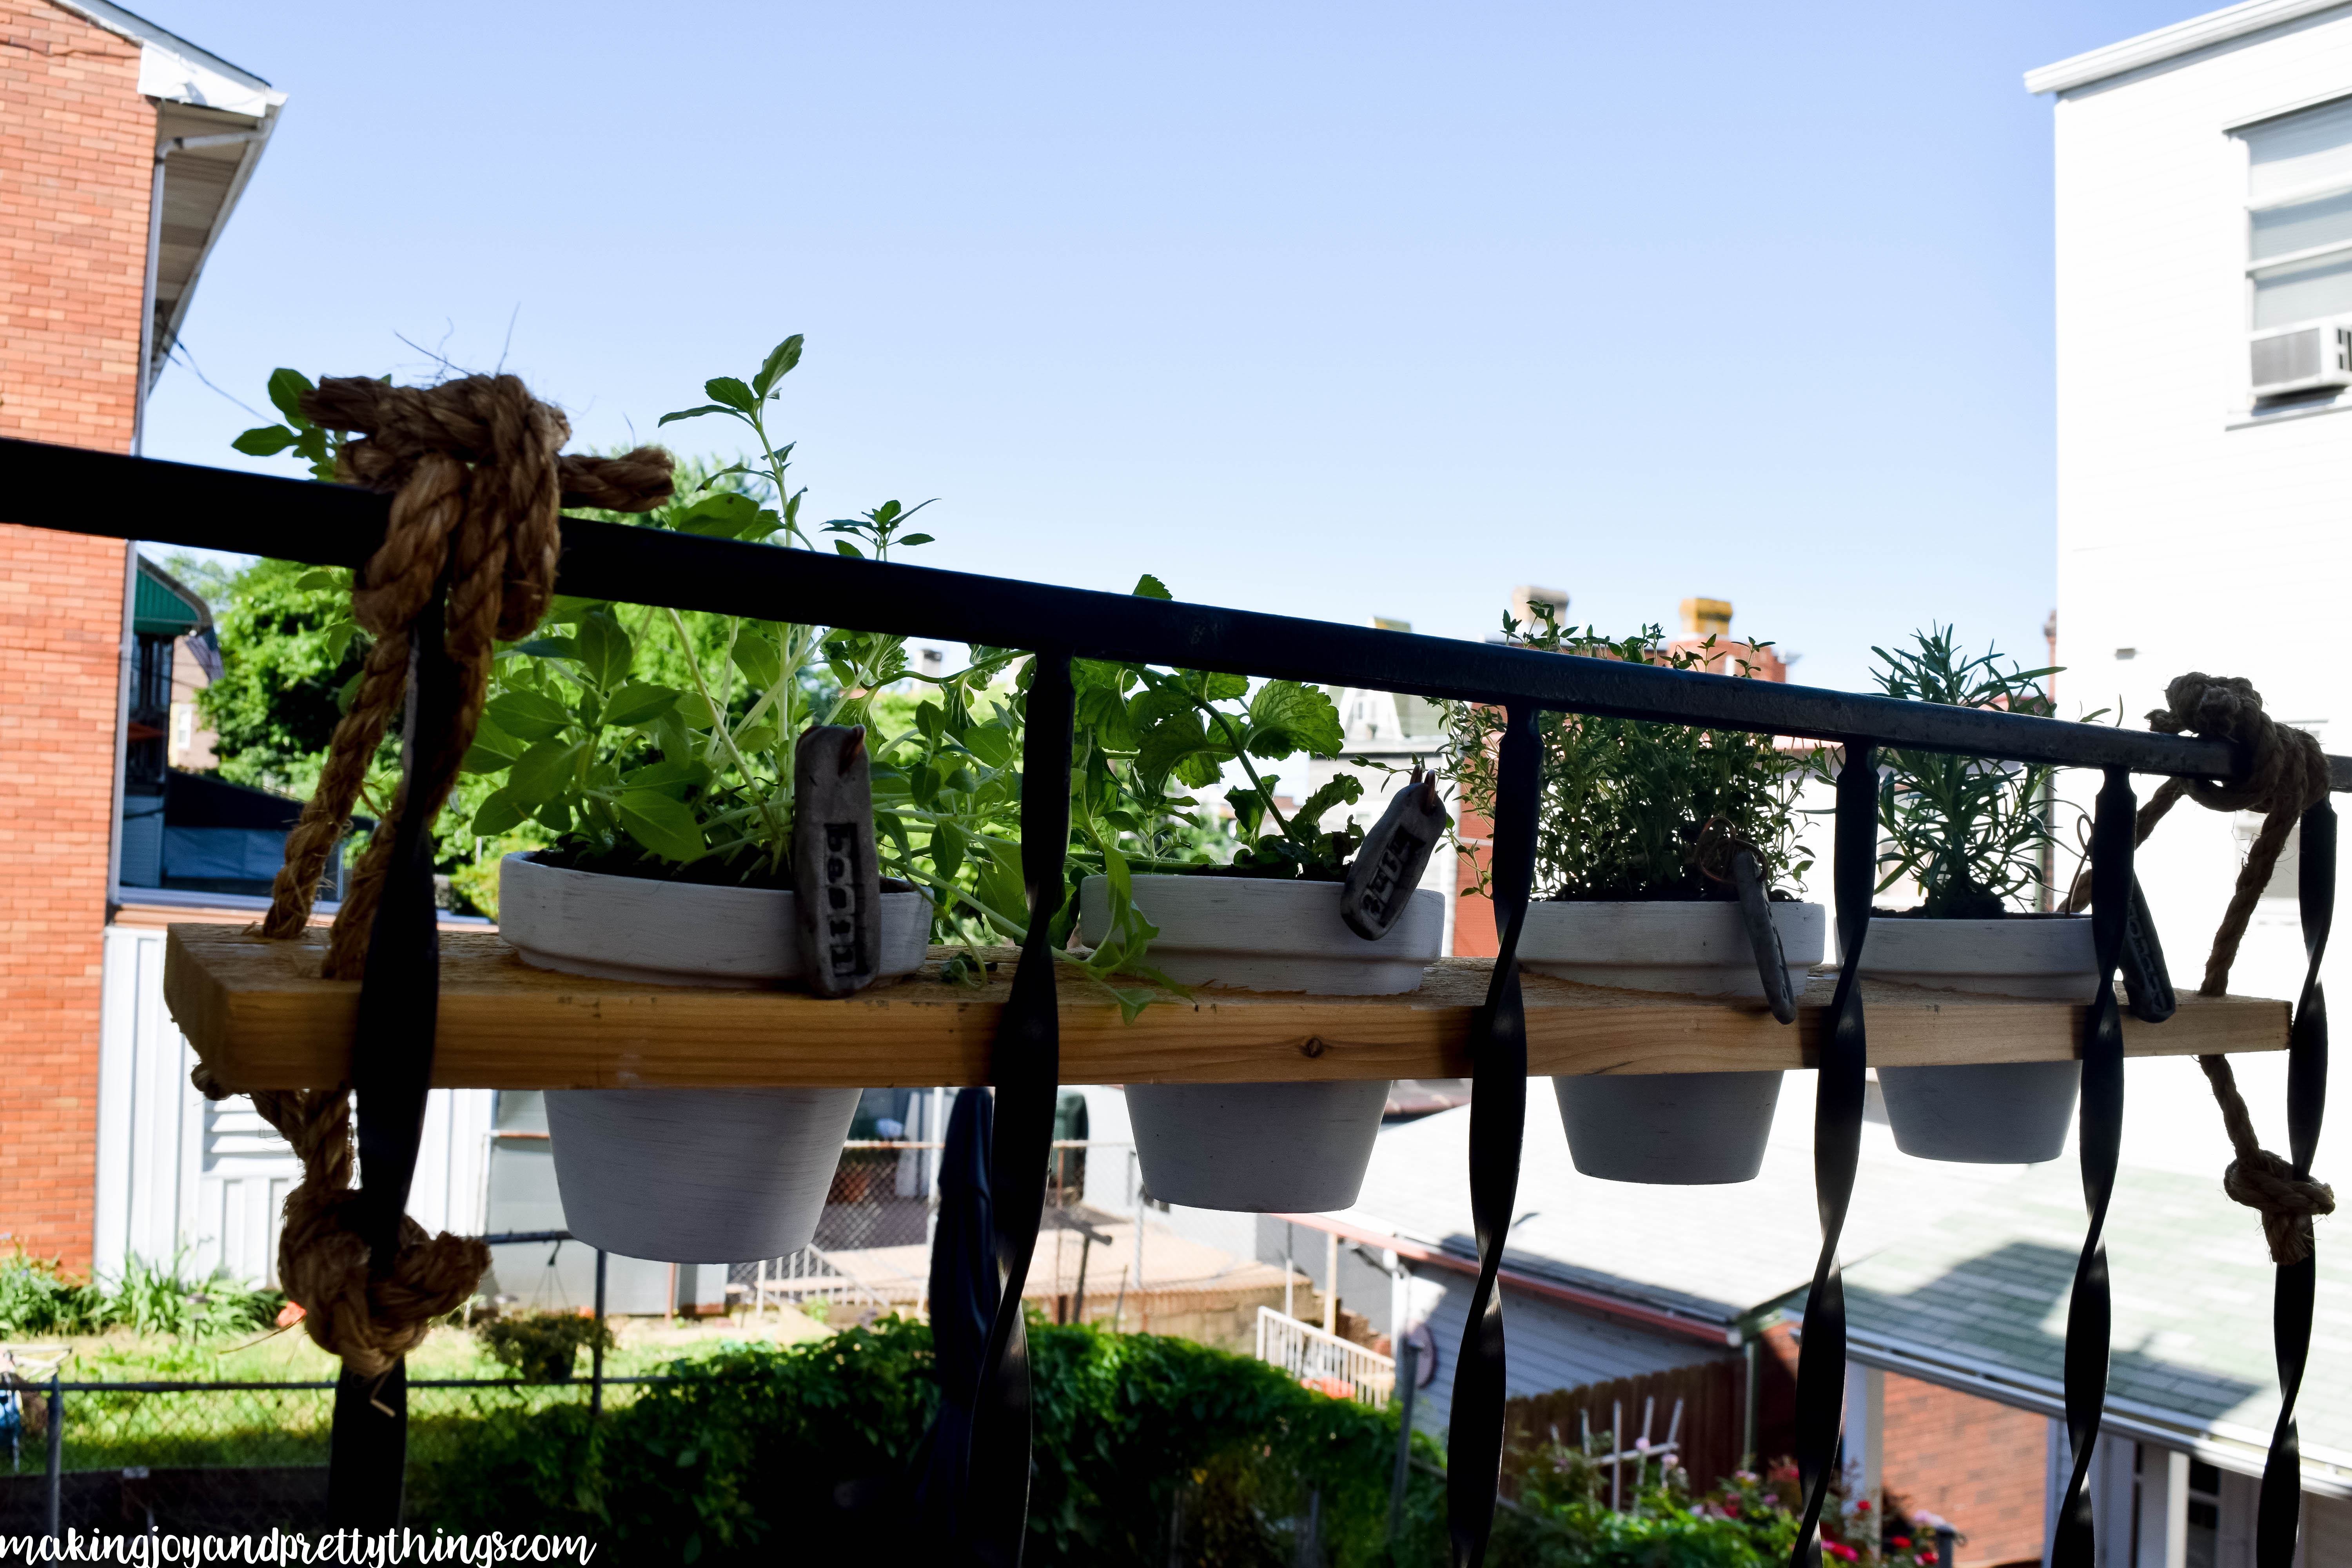 You HAVE to check out this amazing DIY hanging herb garden!! Perfect DIY herb garden for a small outdoor space. Hangs on a railing like a window box!